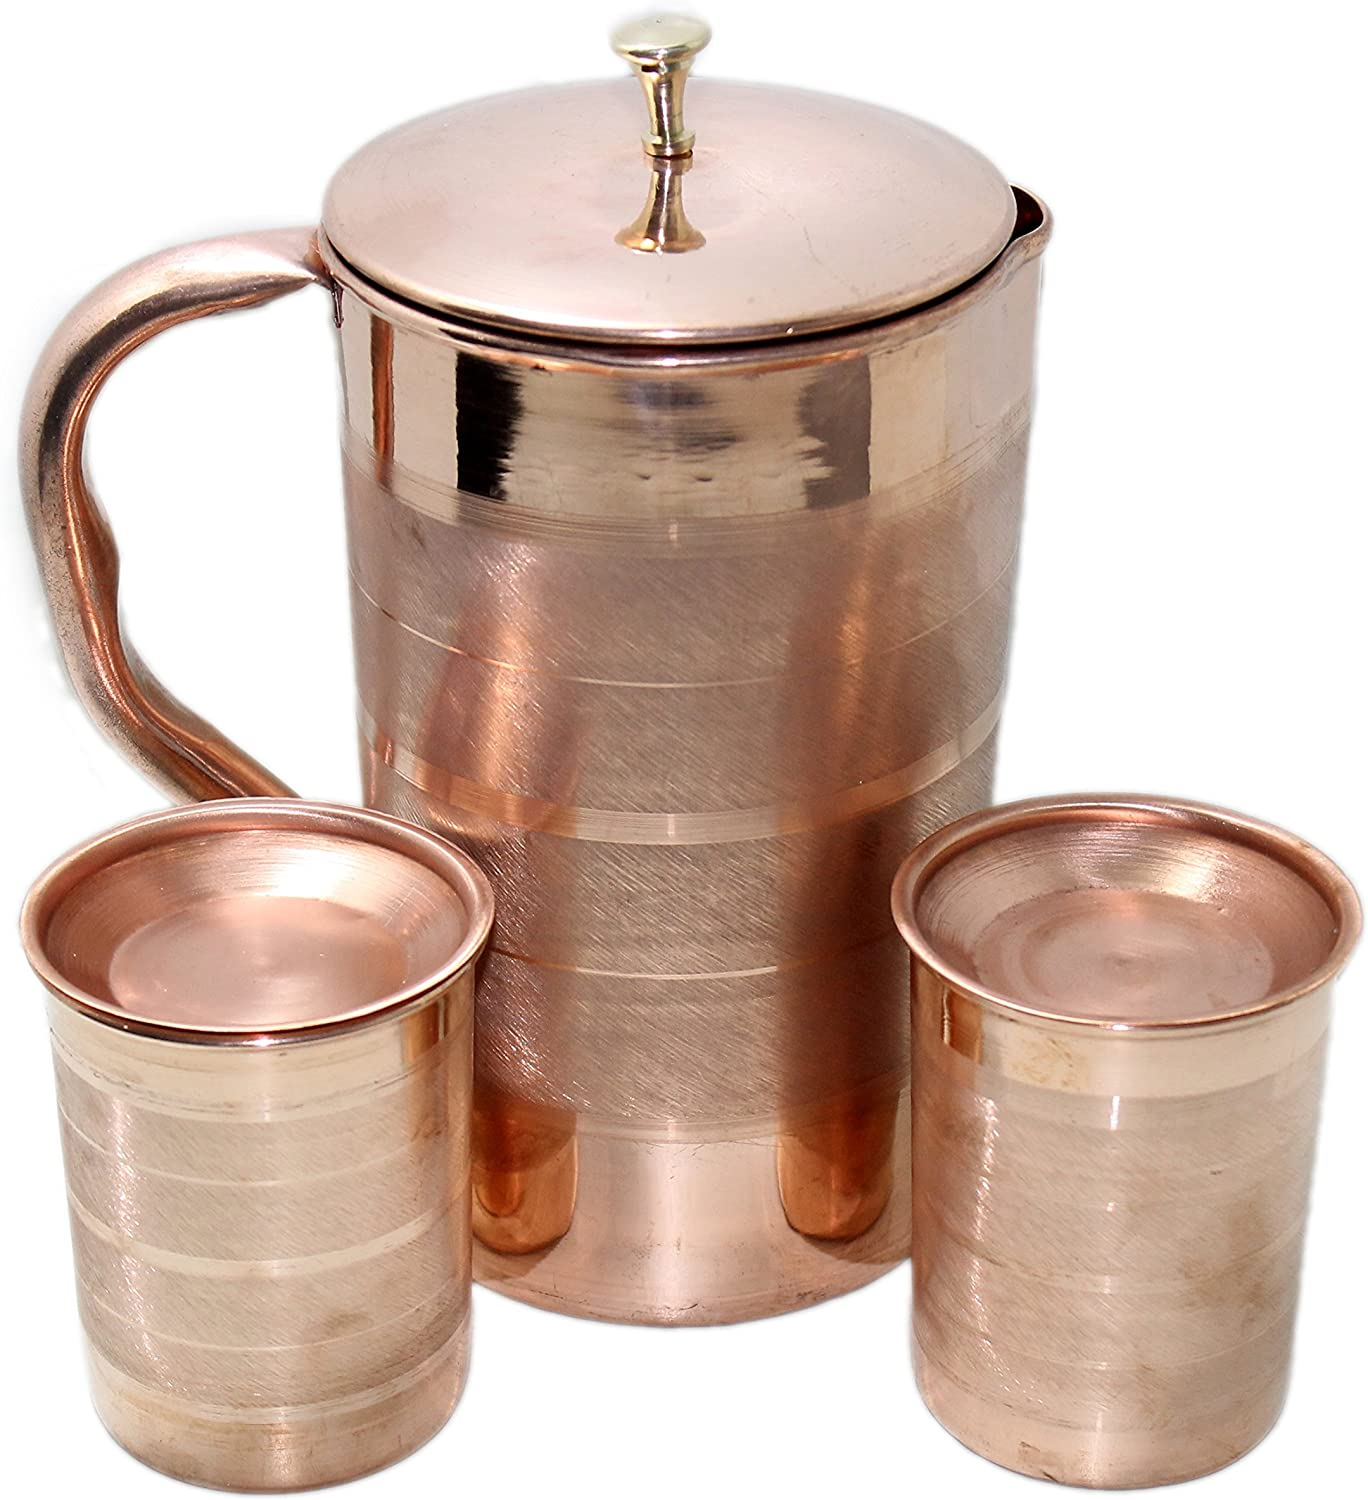 STREET CRAFT Pure Copper Pitcher Ayurveda Copper Jug Pitcher and Tumbler With Lid Copper pitcher with glass Copper jug Set Copper Luxury Finish